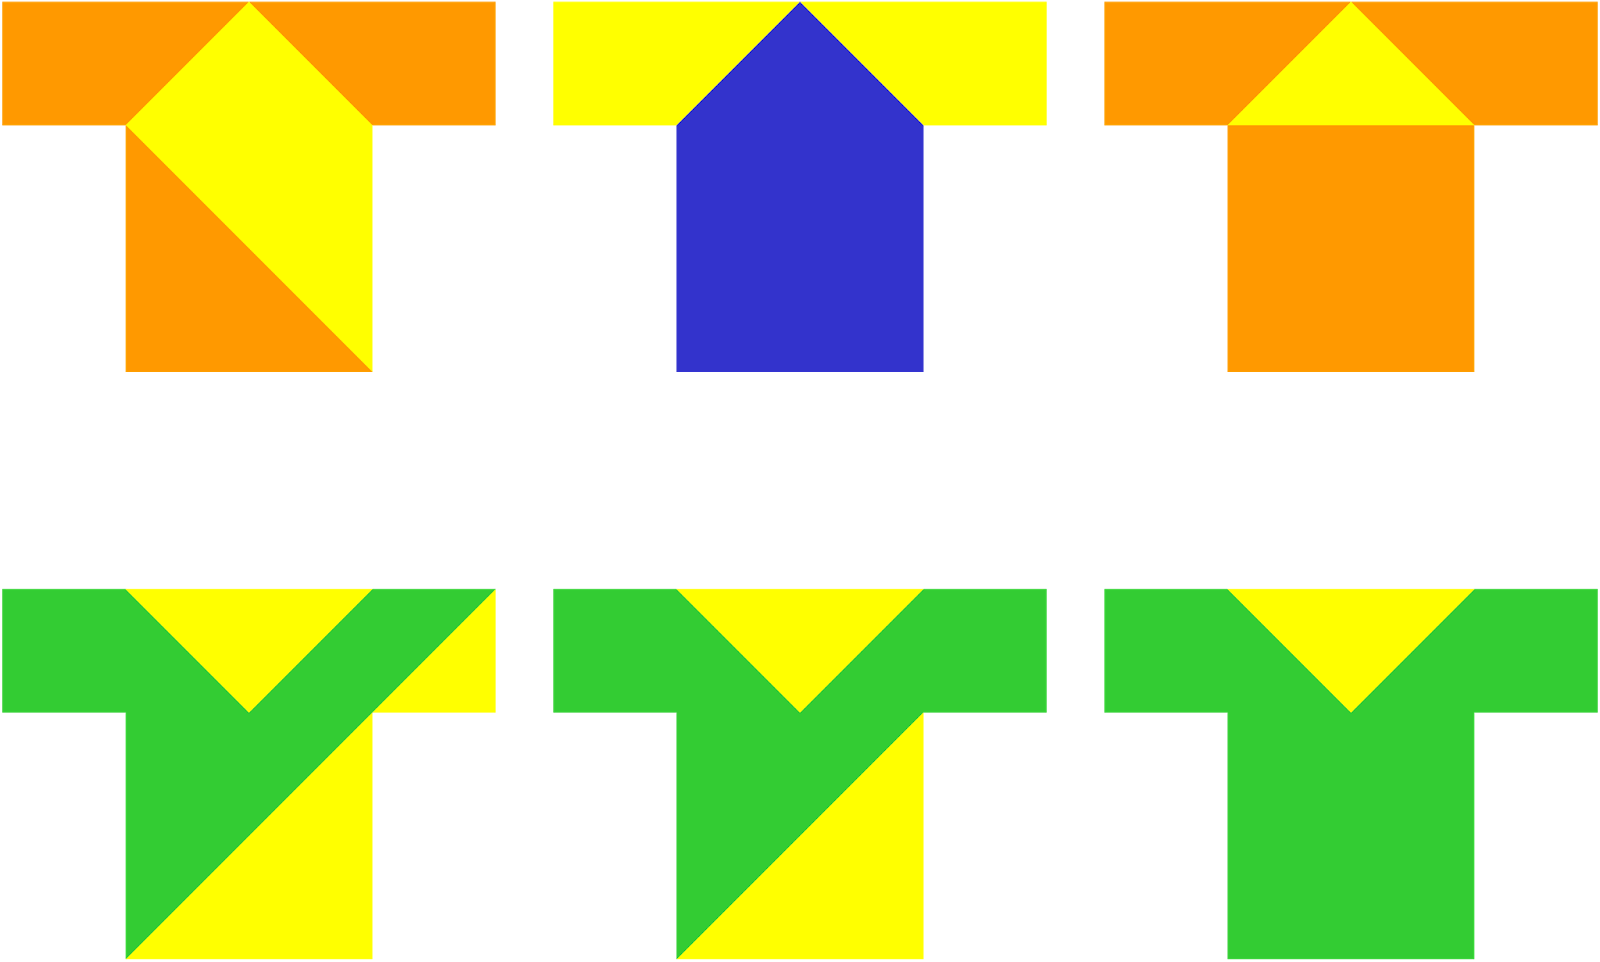 Colorful Tangrams About Me